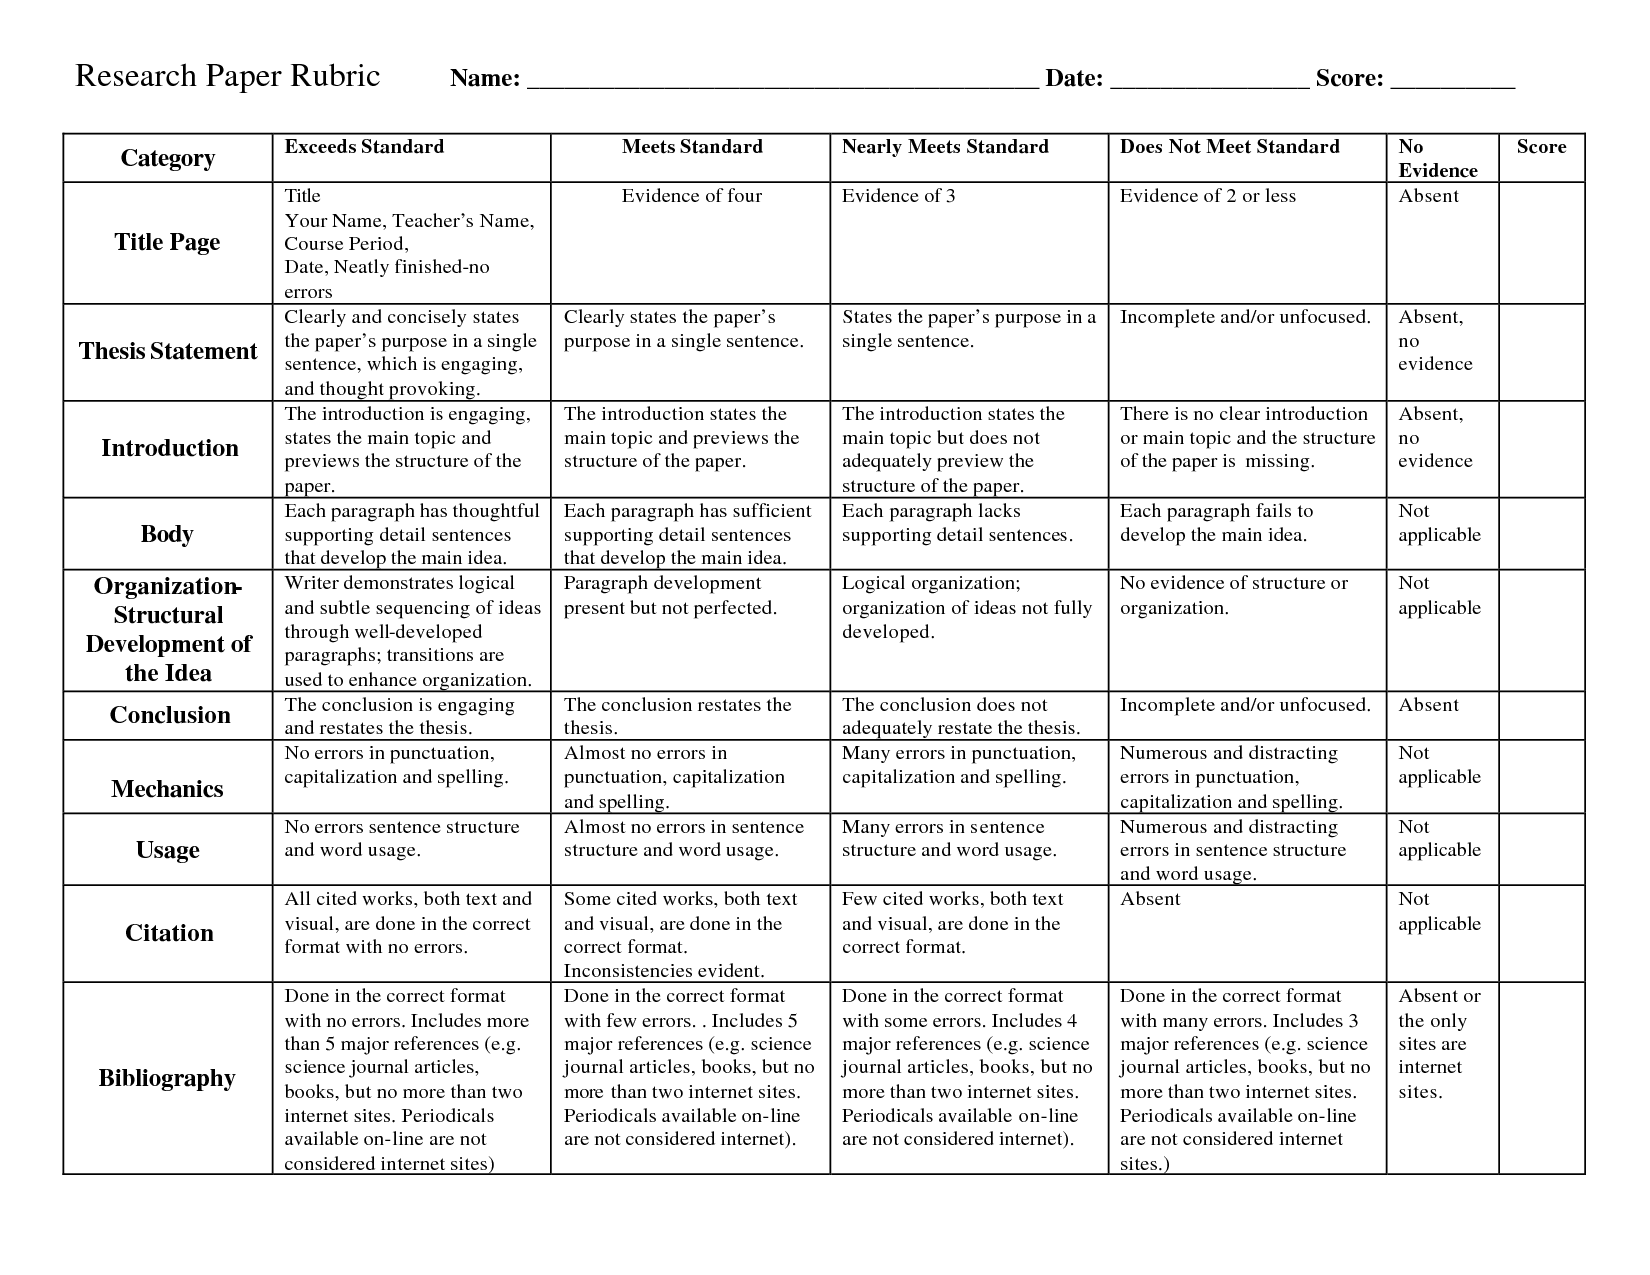 rubric for research paper scope of work template middle school rubric for research paper scope of work template